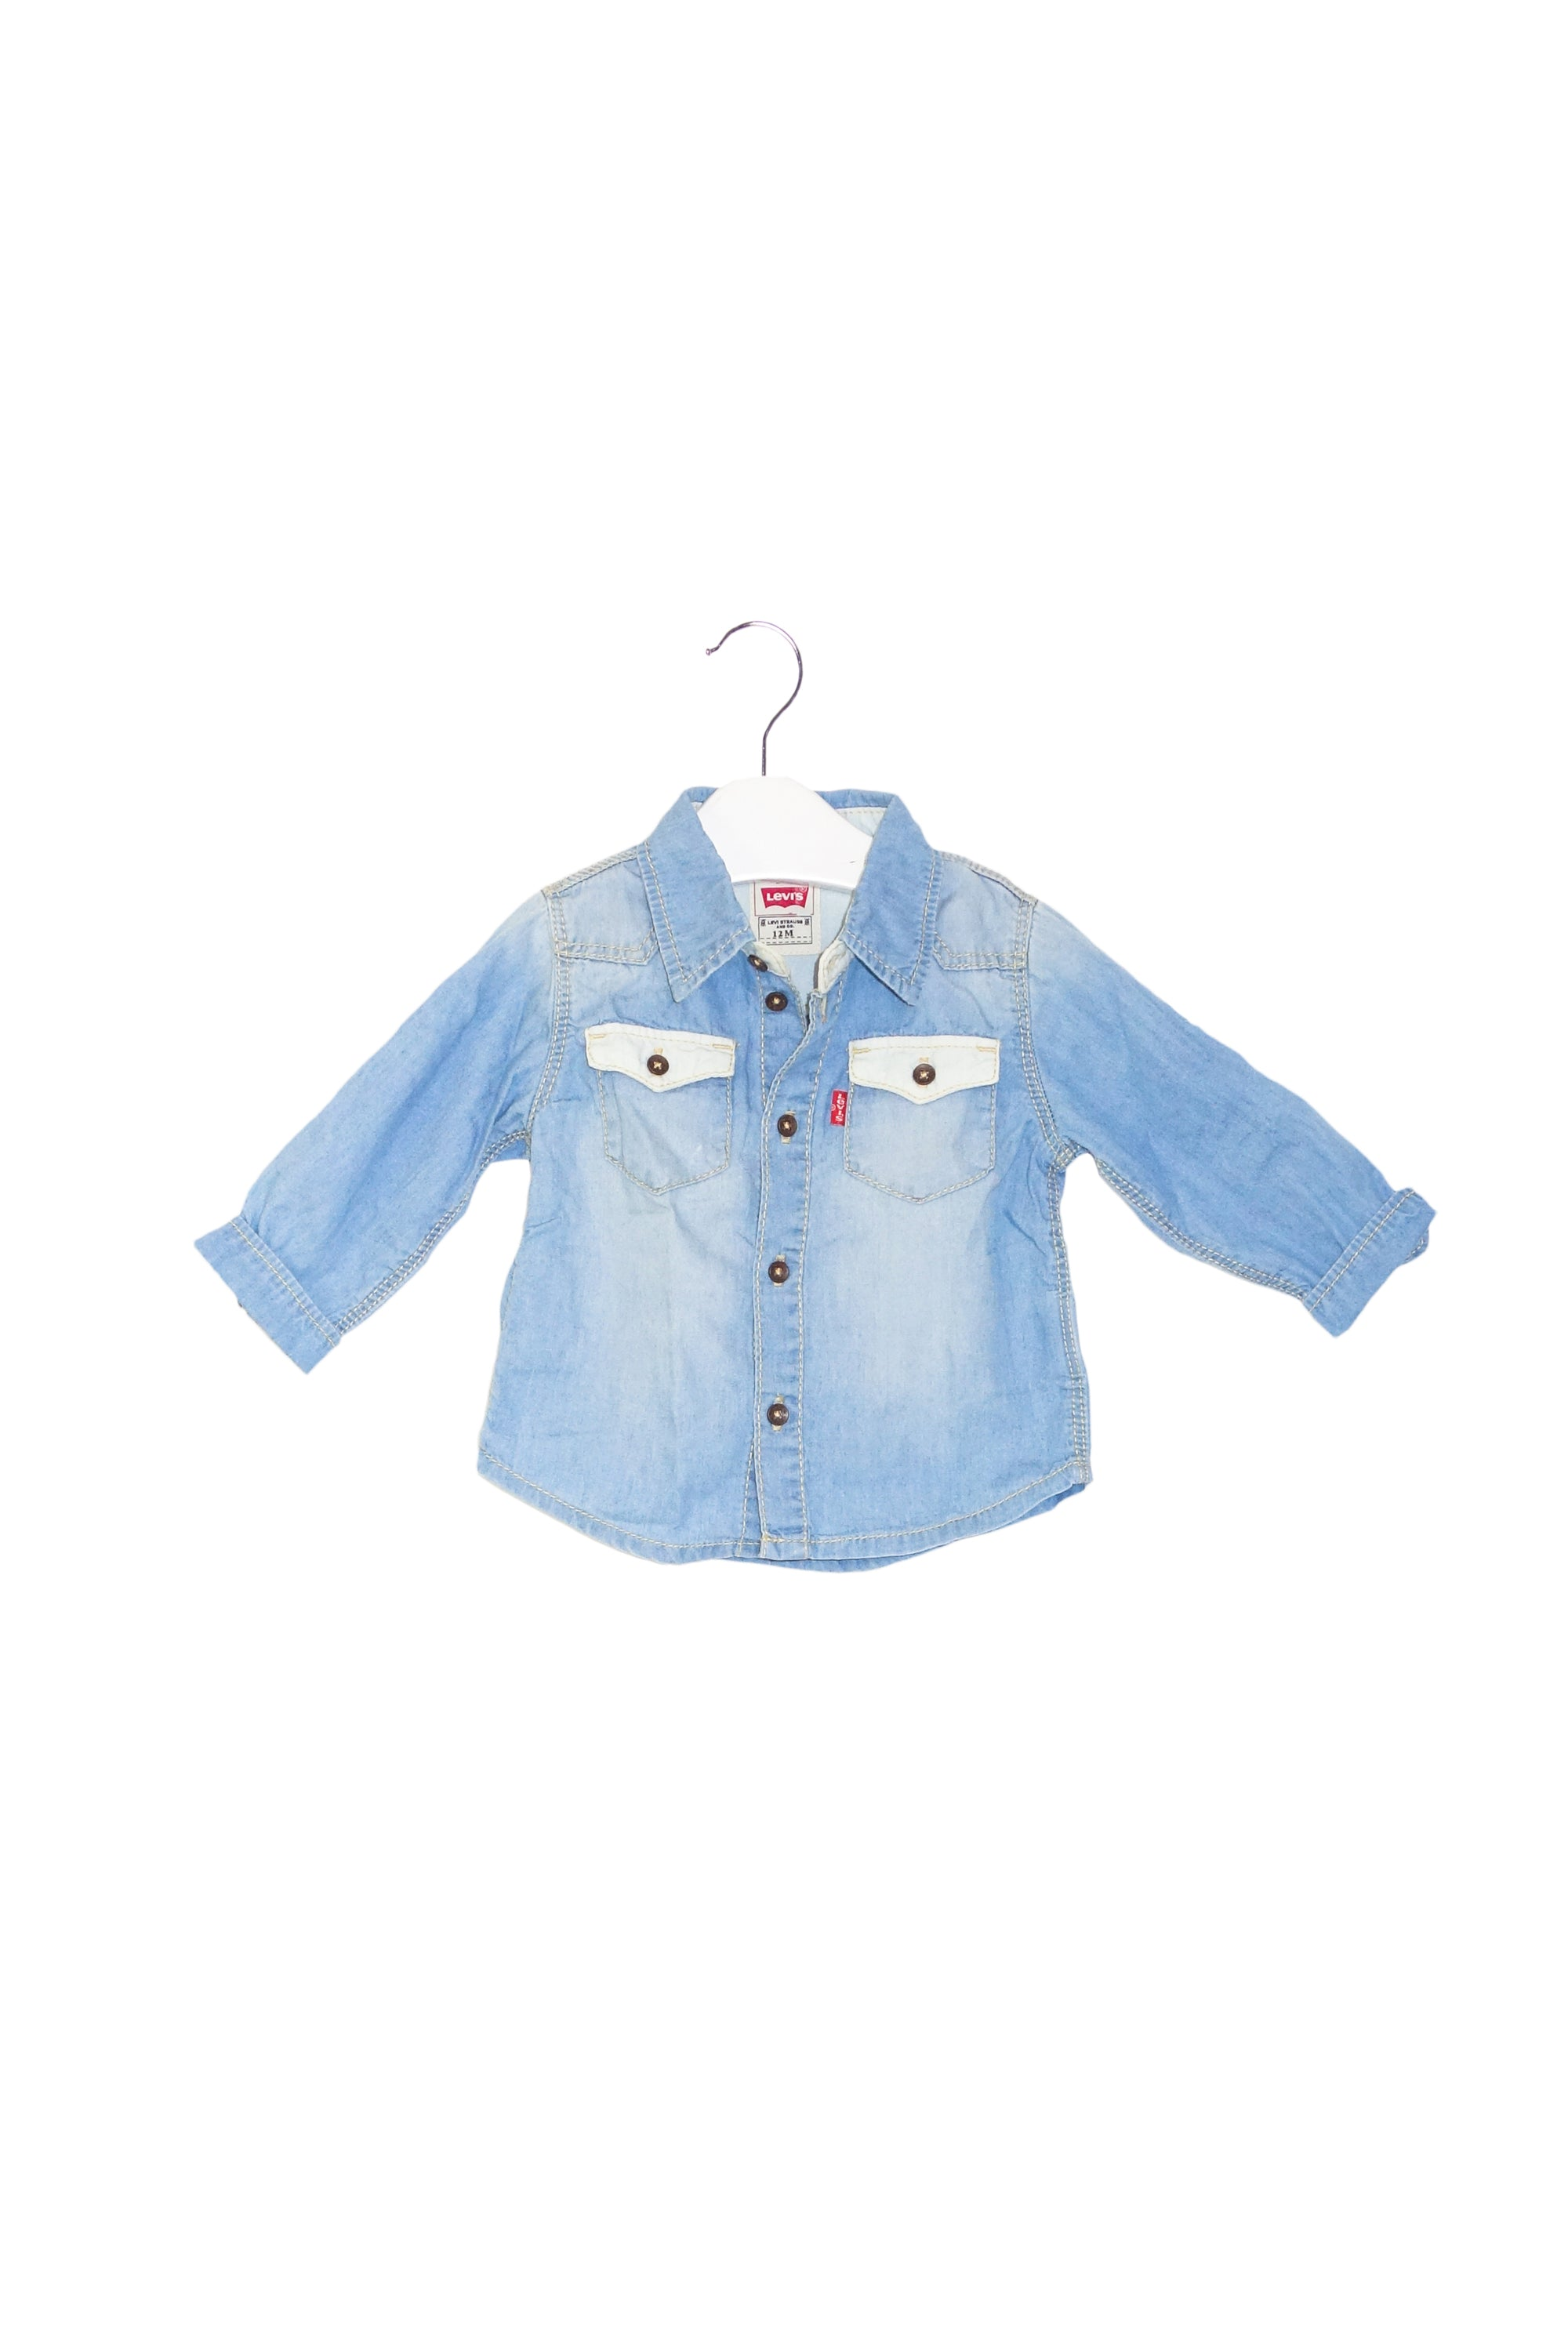 10013581 Levi's Baby ~ Shirt 12M at Retykle